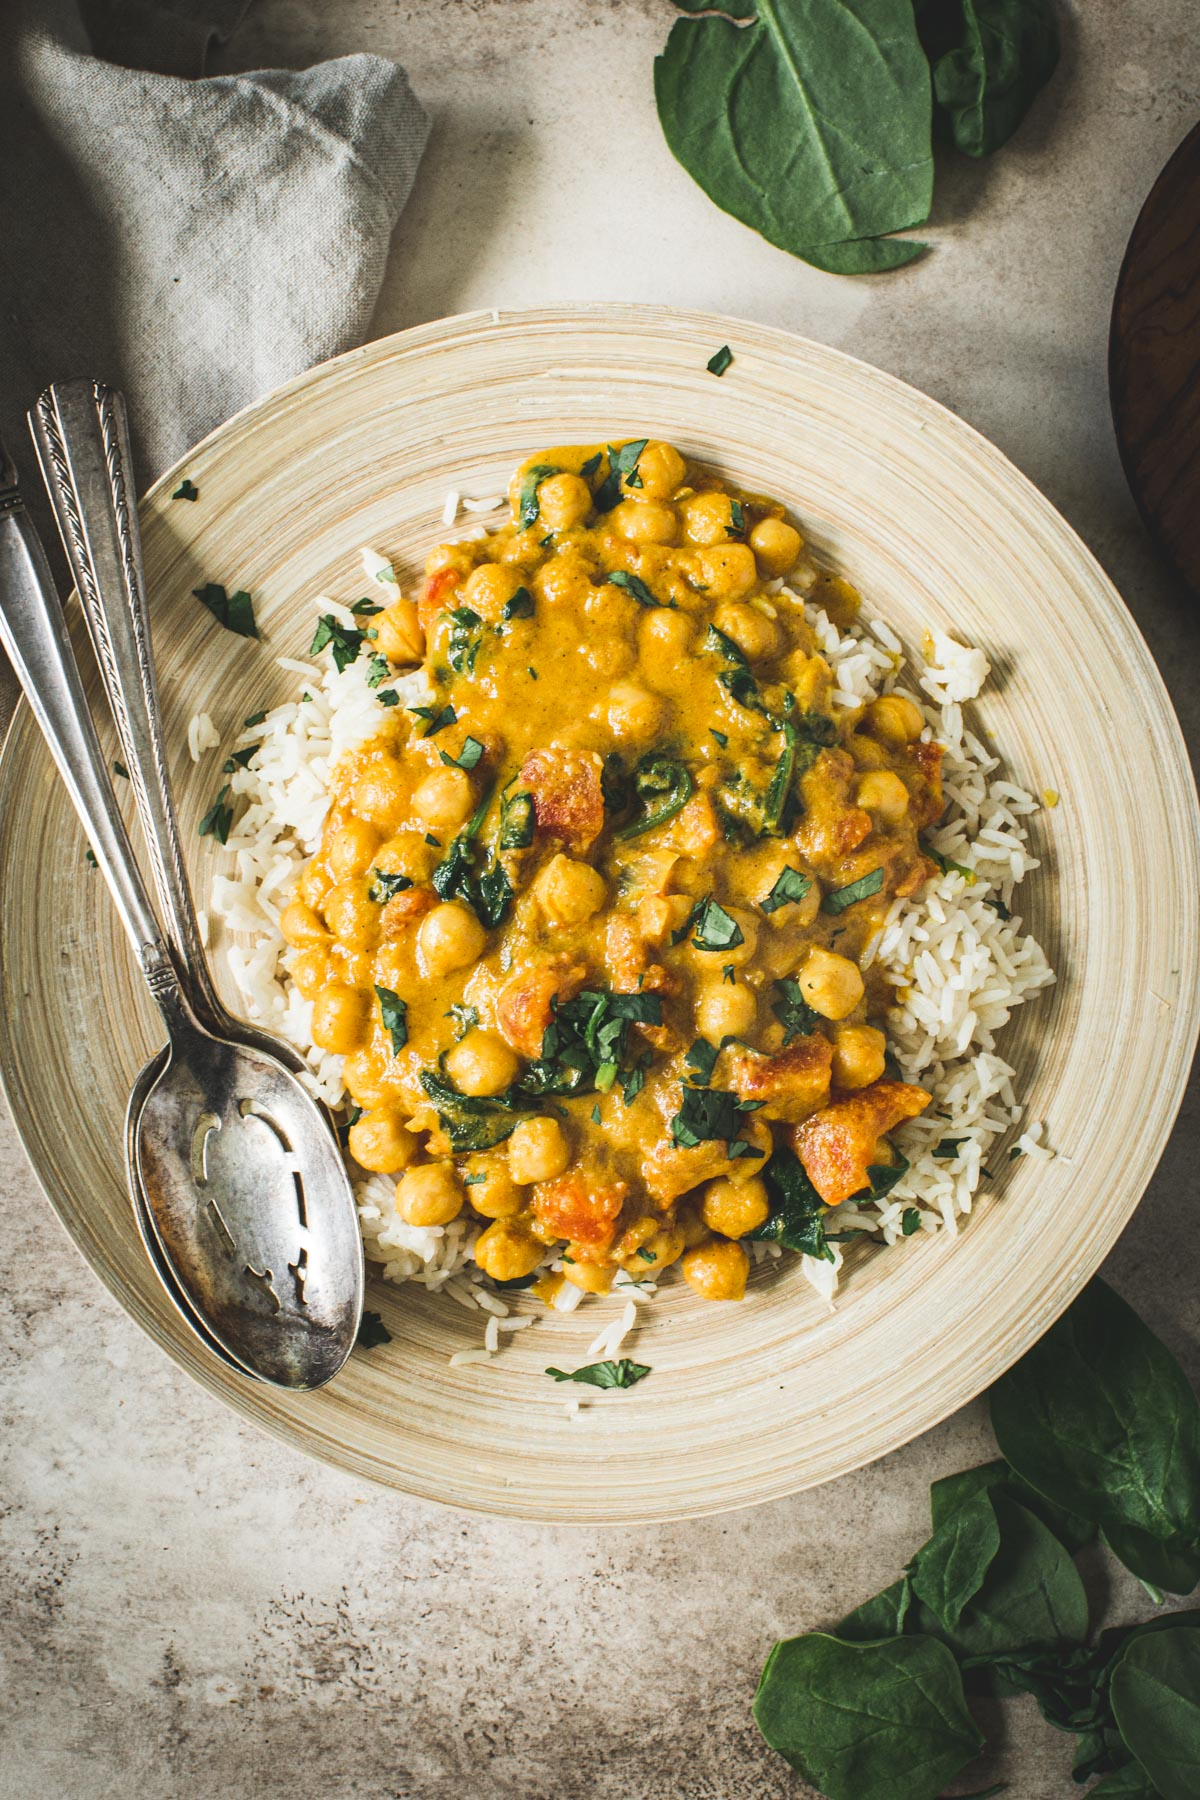 Vegan chickpea spinach curry on a bamboo plate with silver serving spoons.